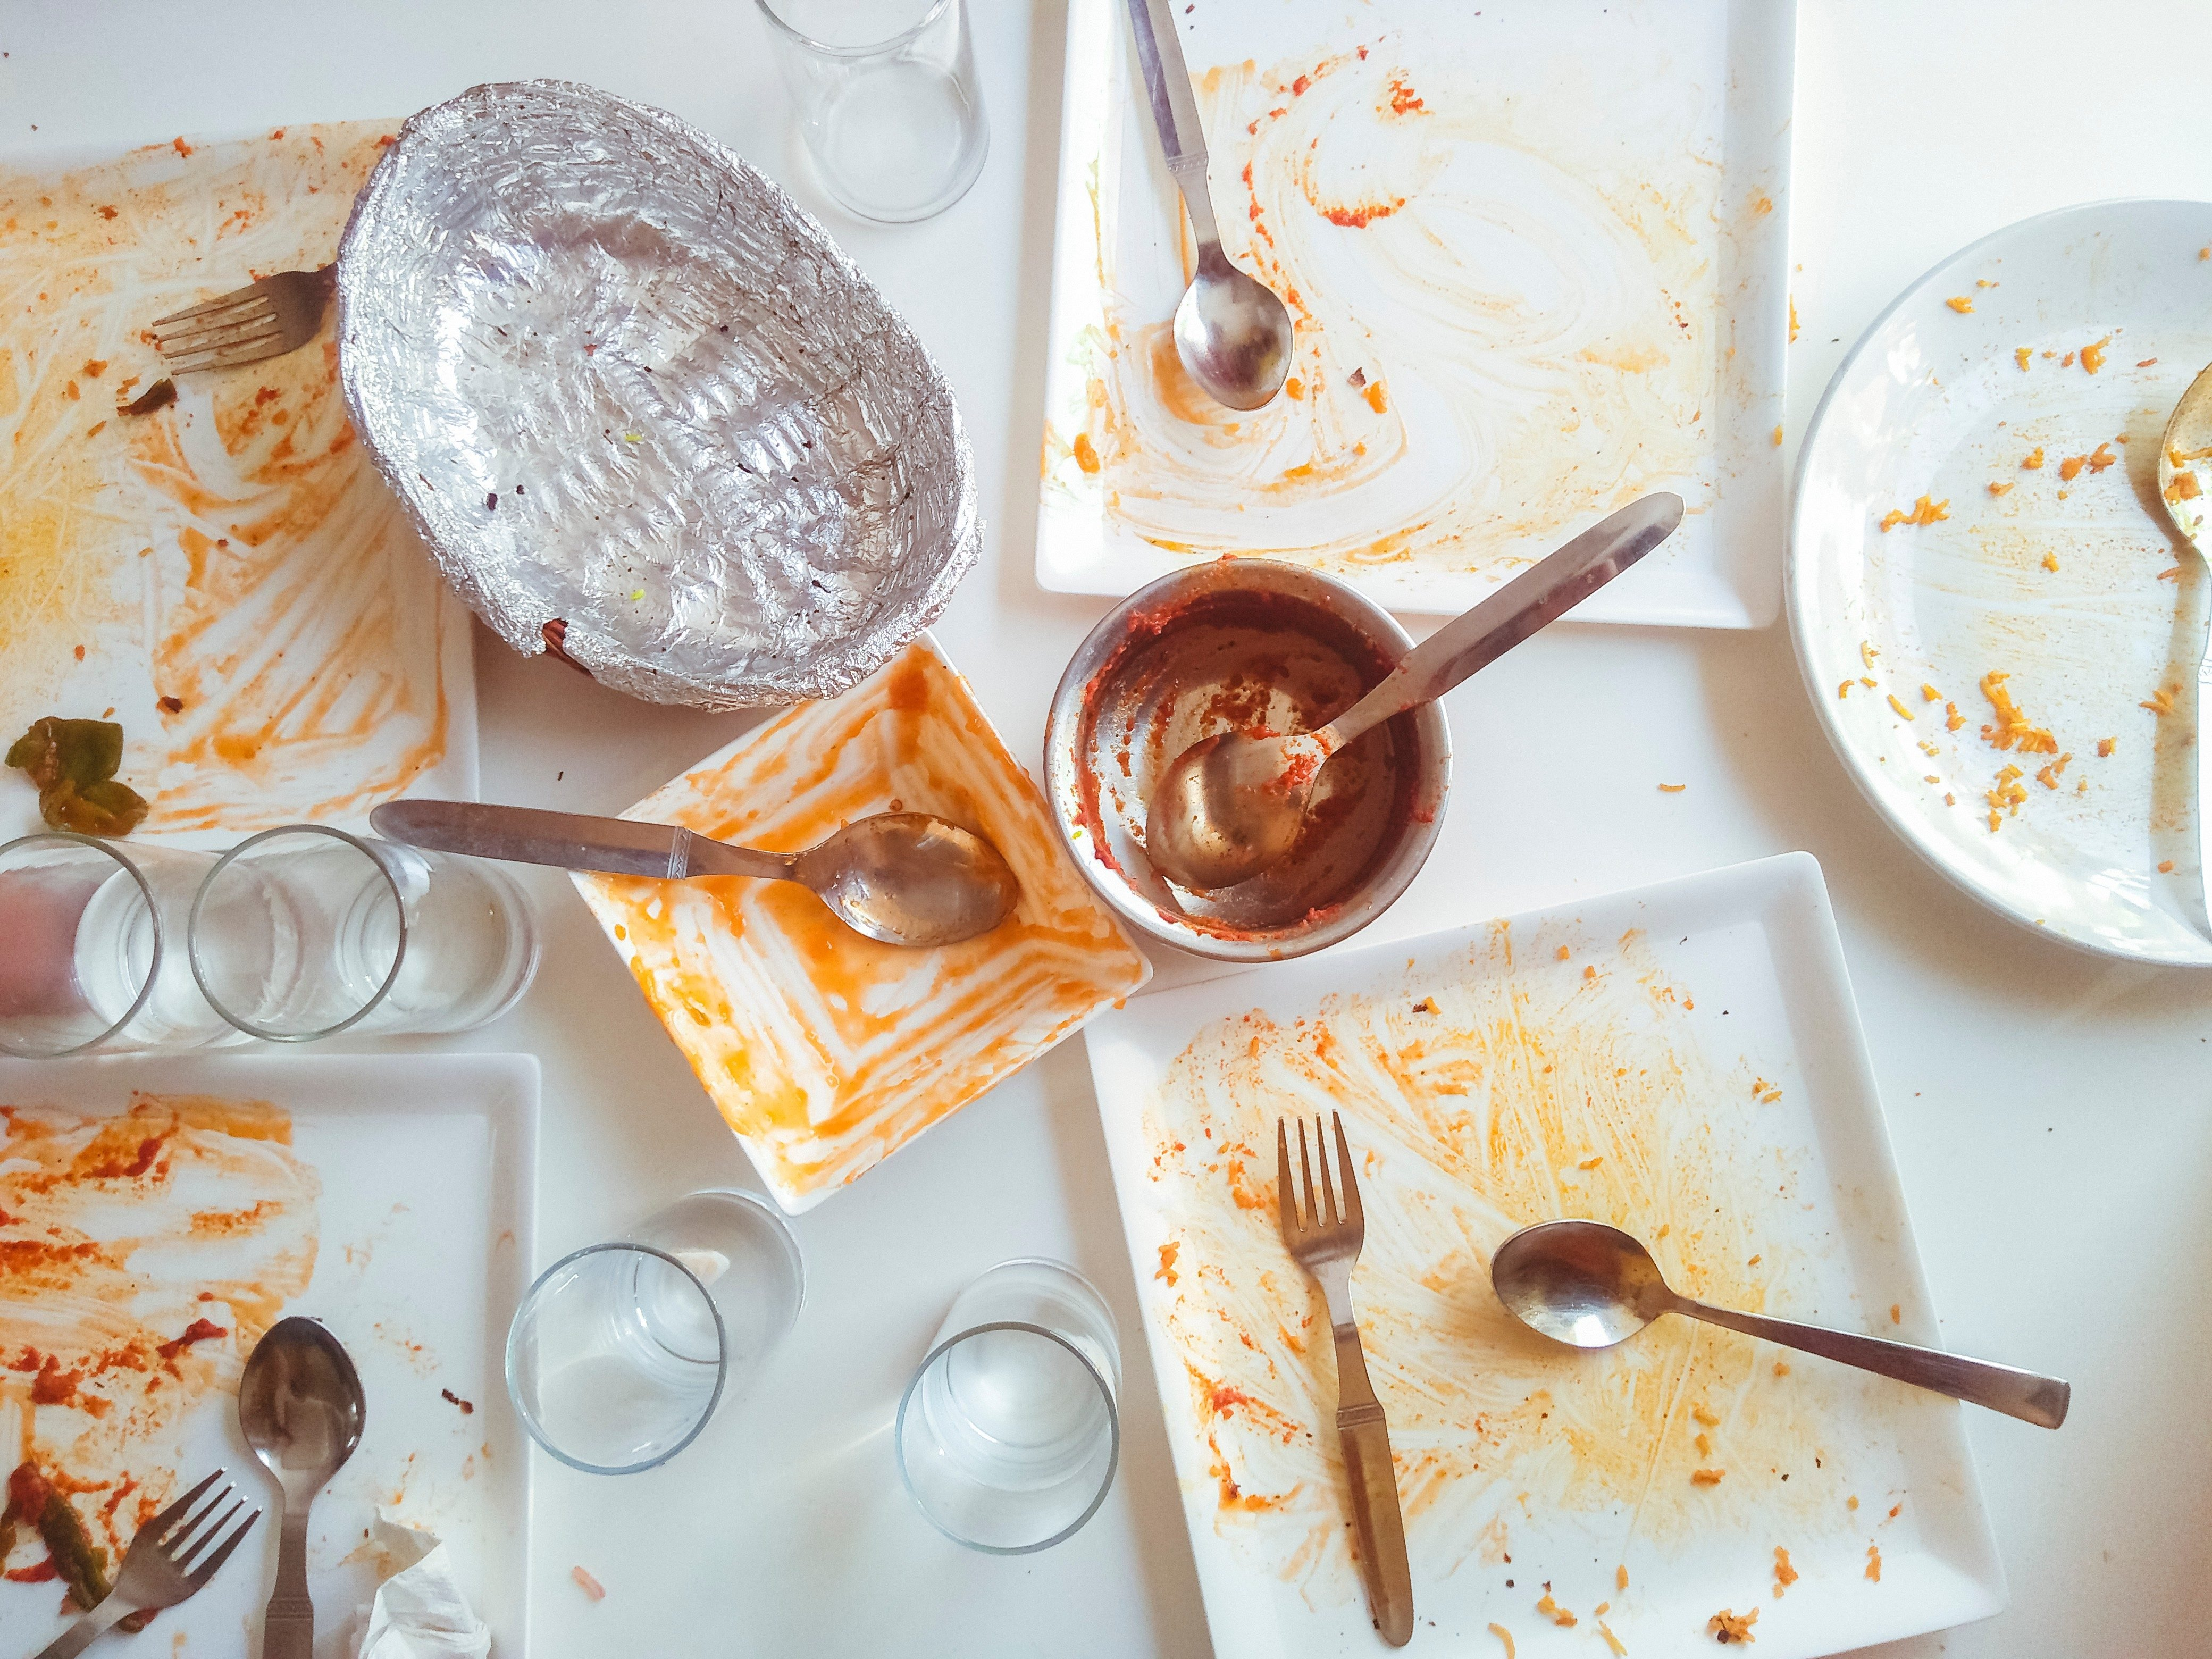 Messy dining table and crockery after lunch by many people. No people, still life, table top image shot from top angle in natural light in a restaurant.